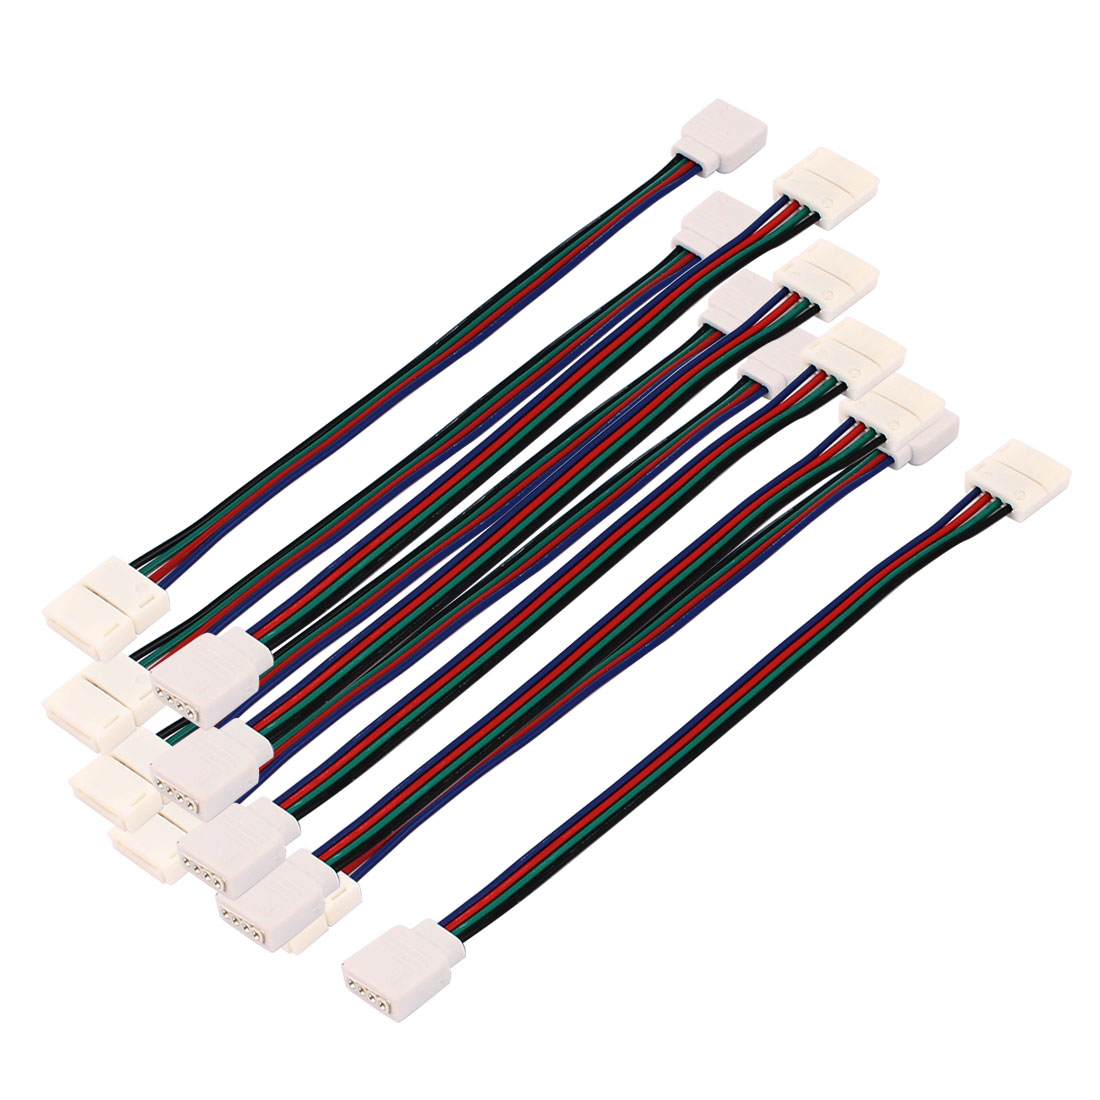 10Pcs RGB LED Light Strips 4 Pin FeMale to B4P-10 Connector Adapter Cable